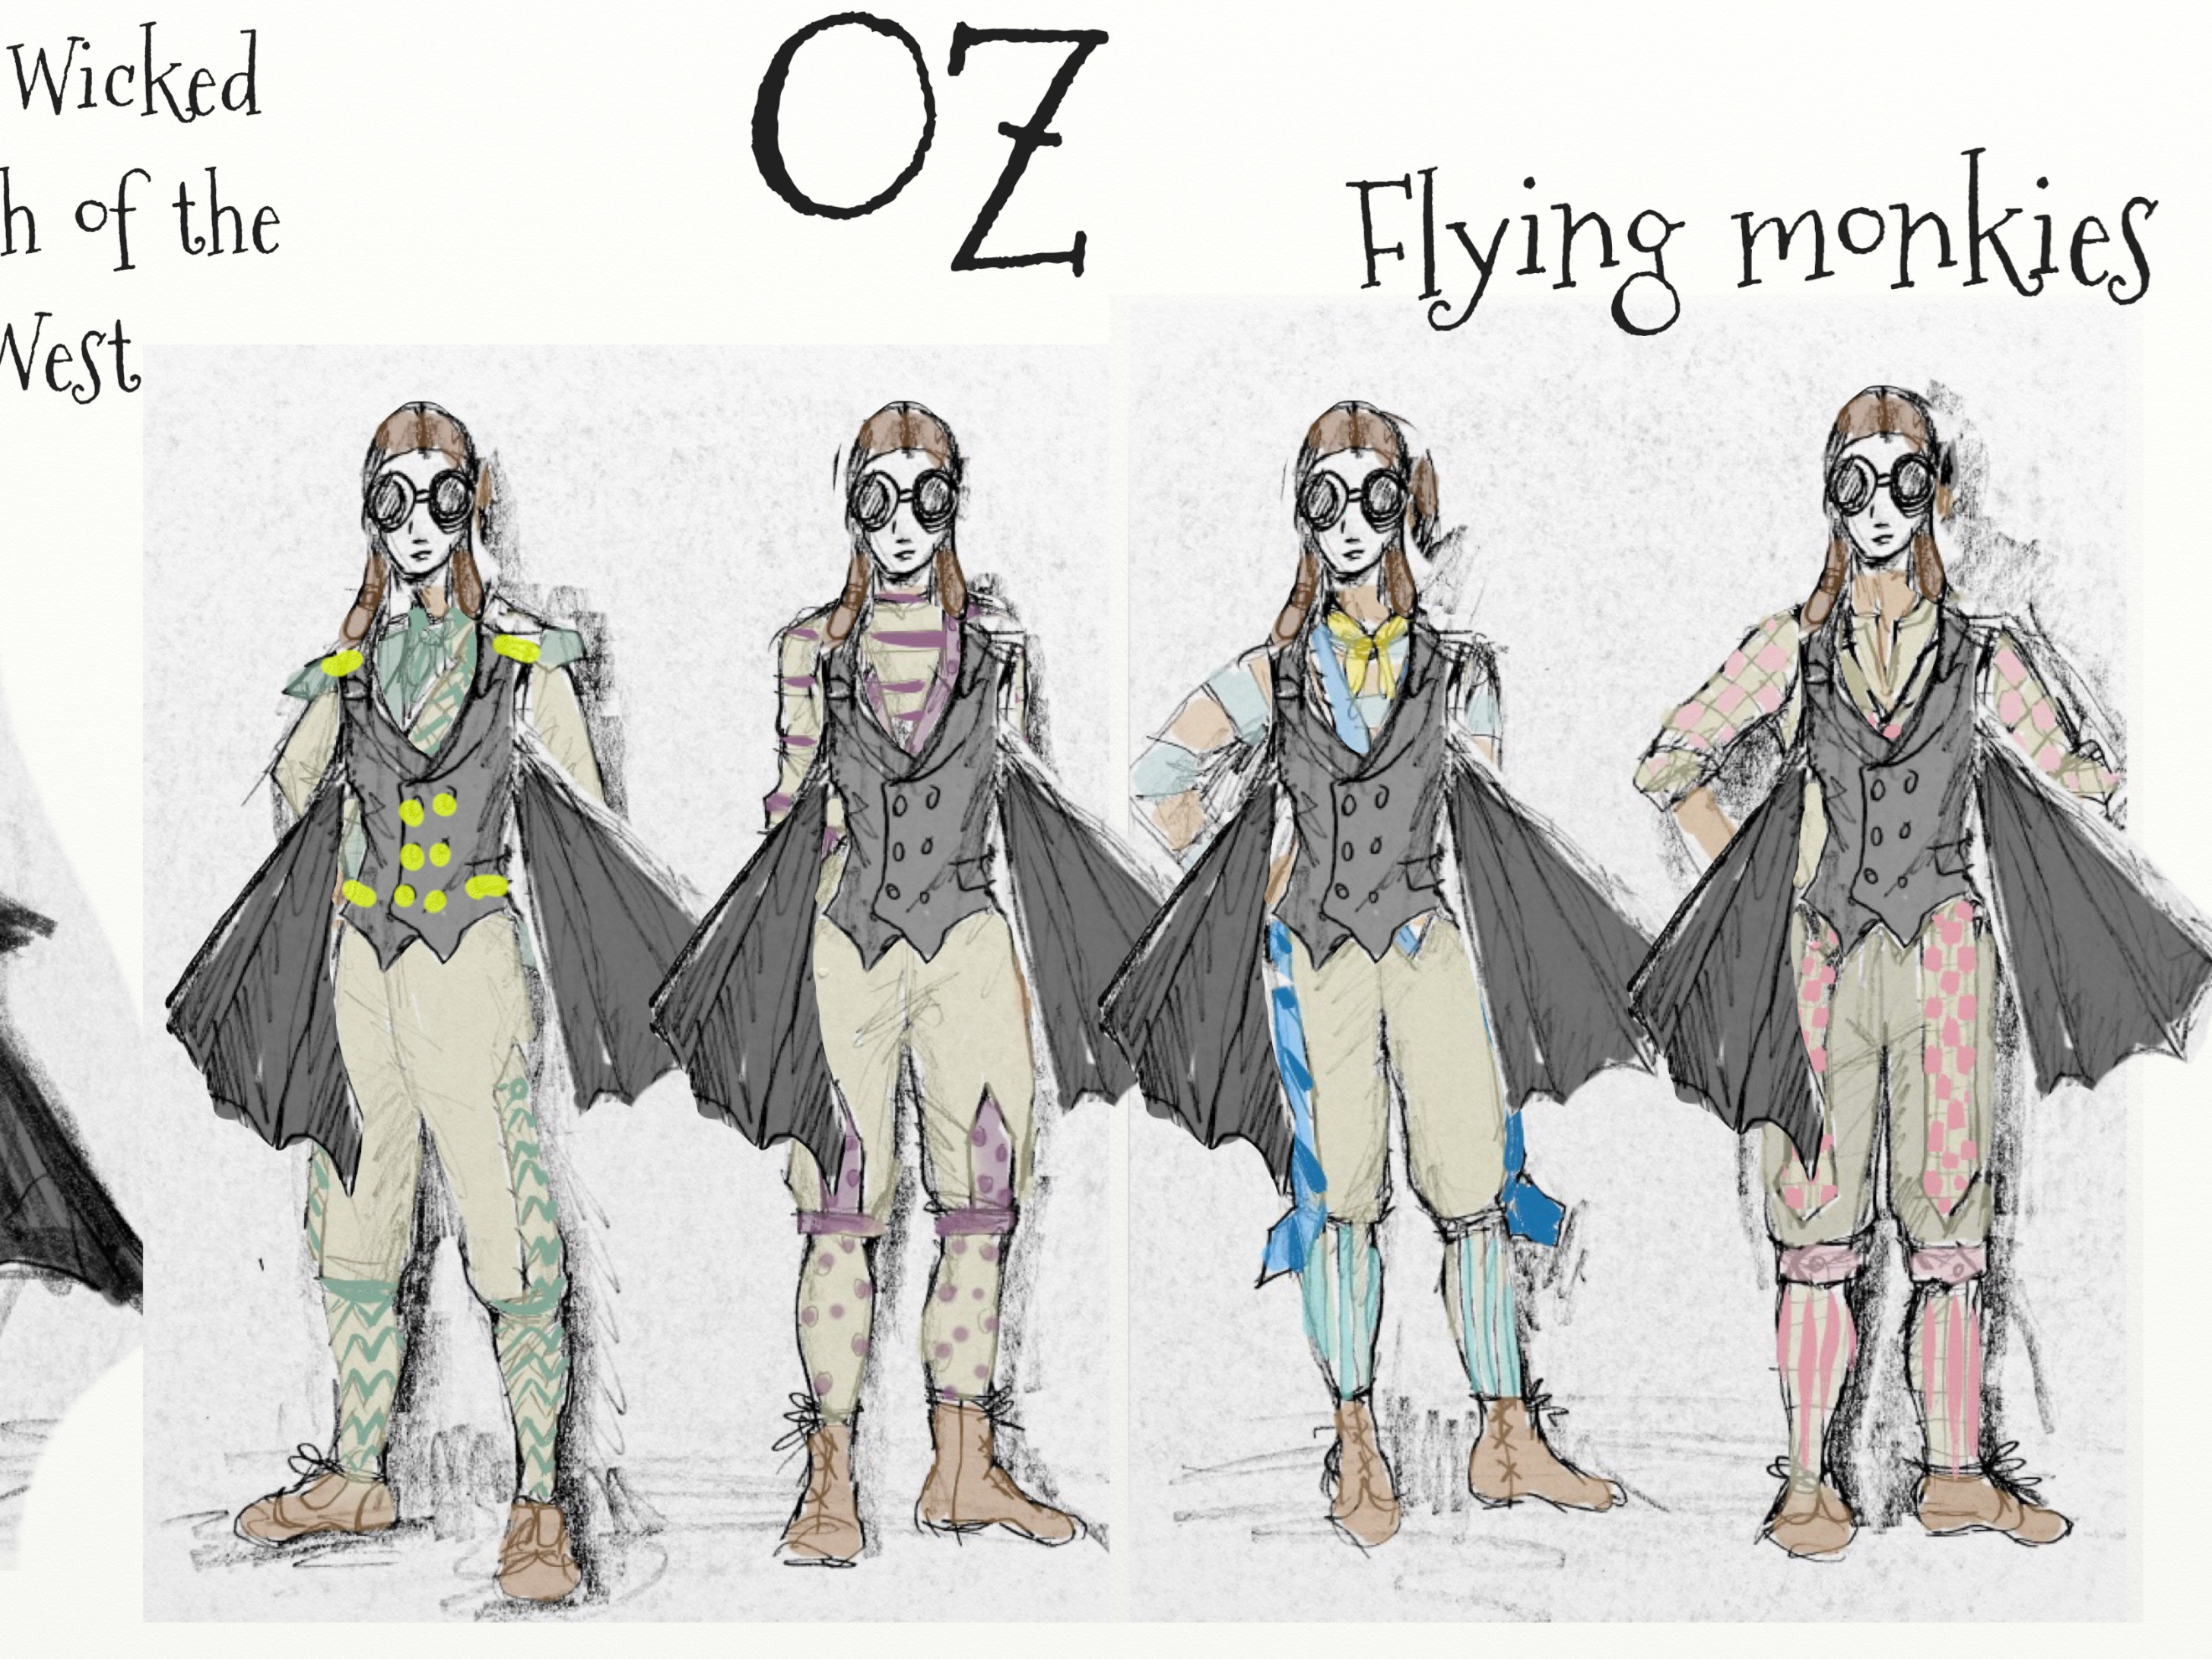 oz1.flyingmonkies